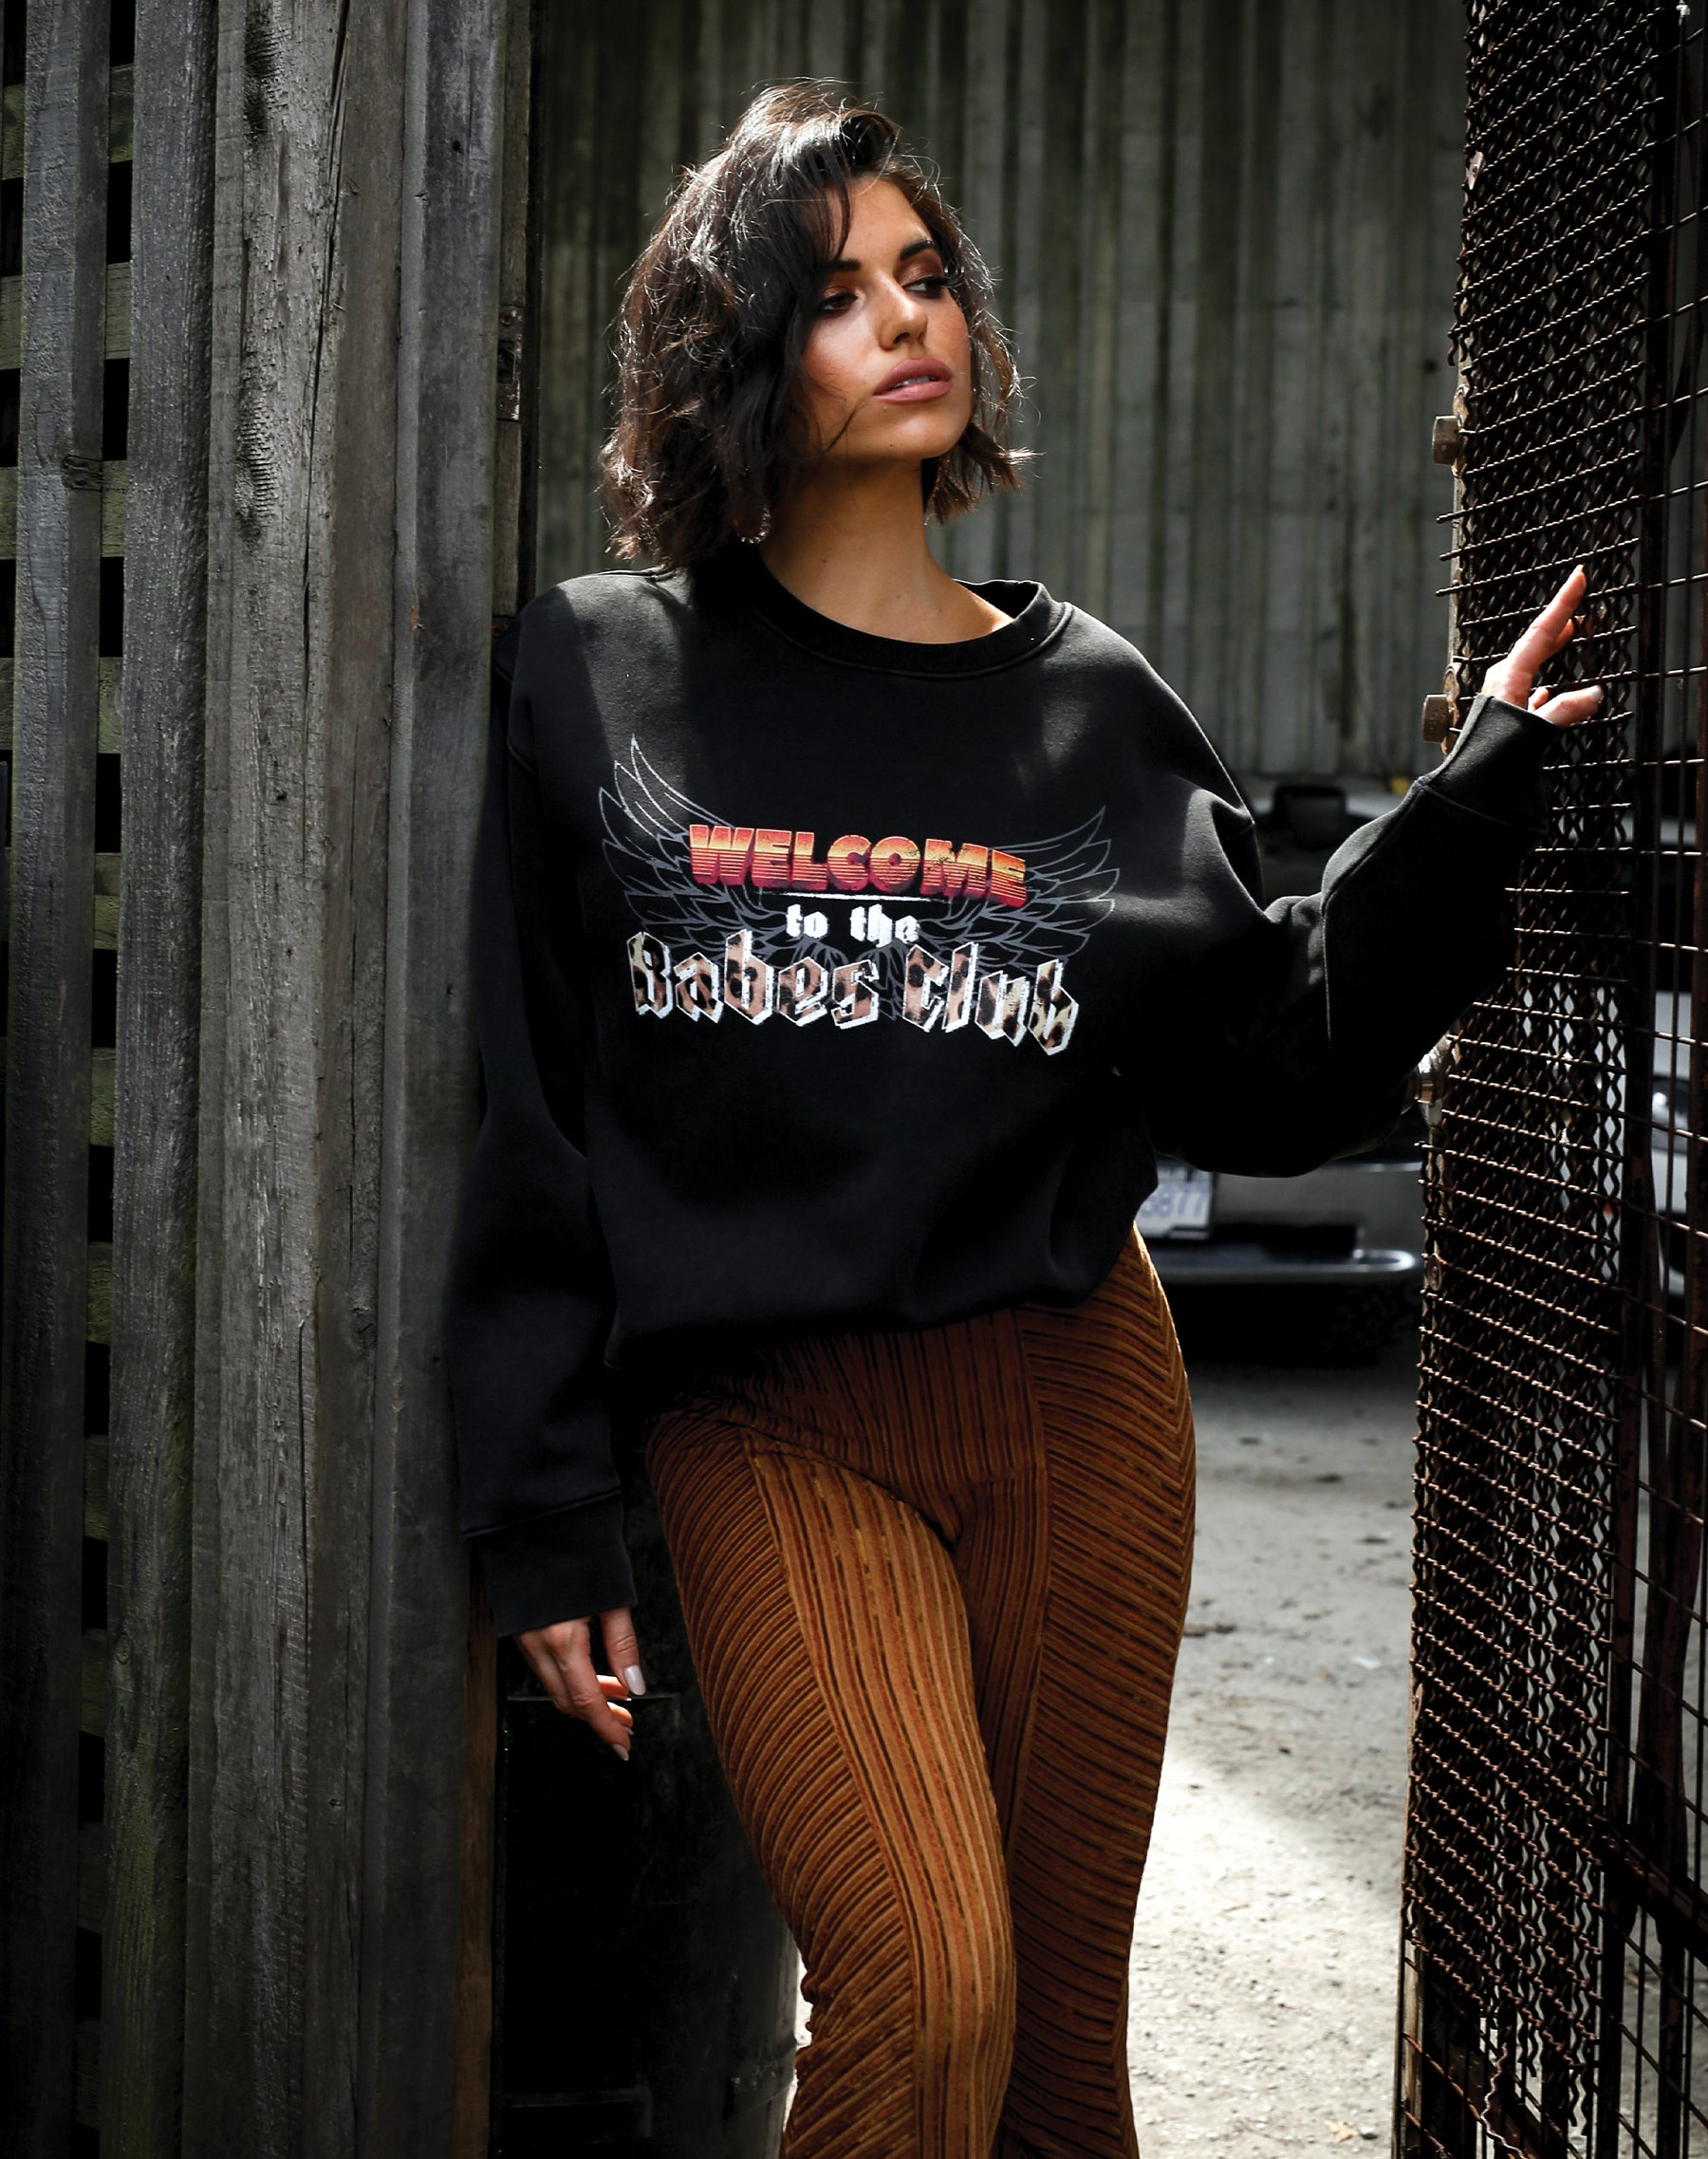 Photo of the Welcome to the Babes Club step sister crew neck sweatshirt from The 1981 Collection by Brunette the Label.